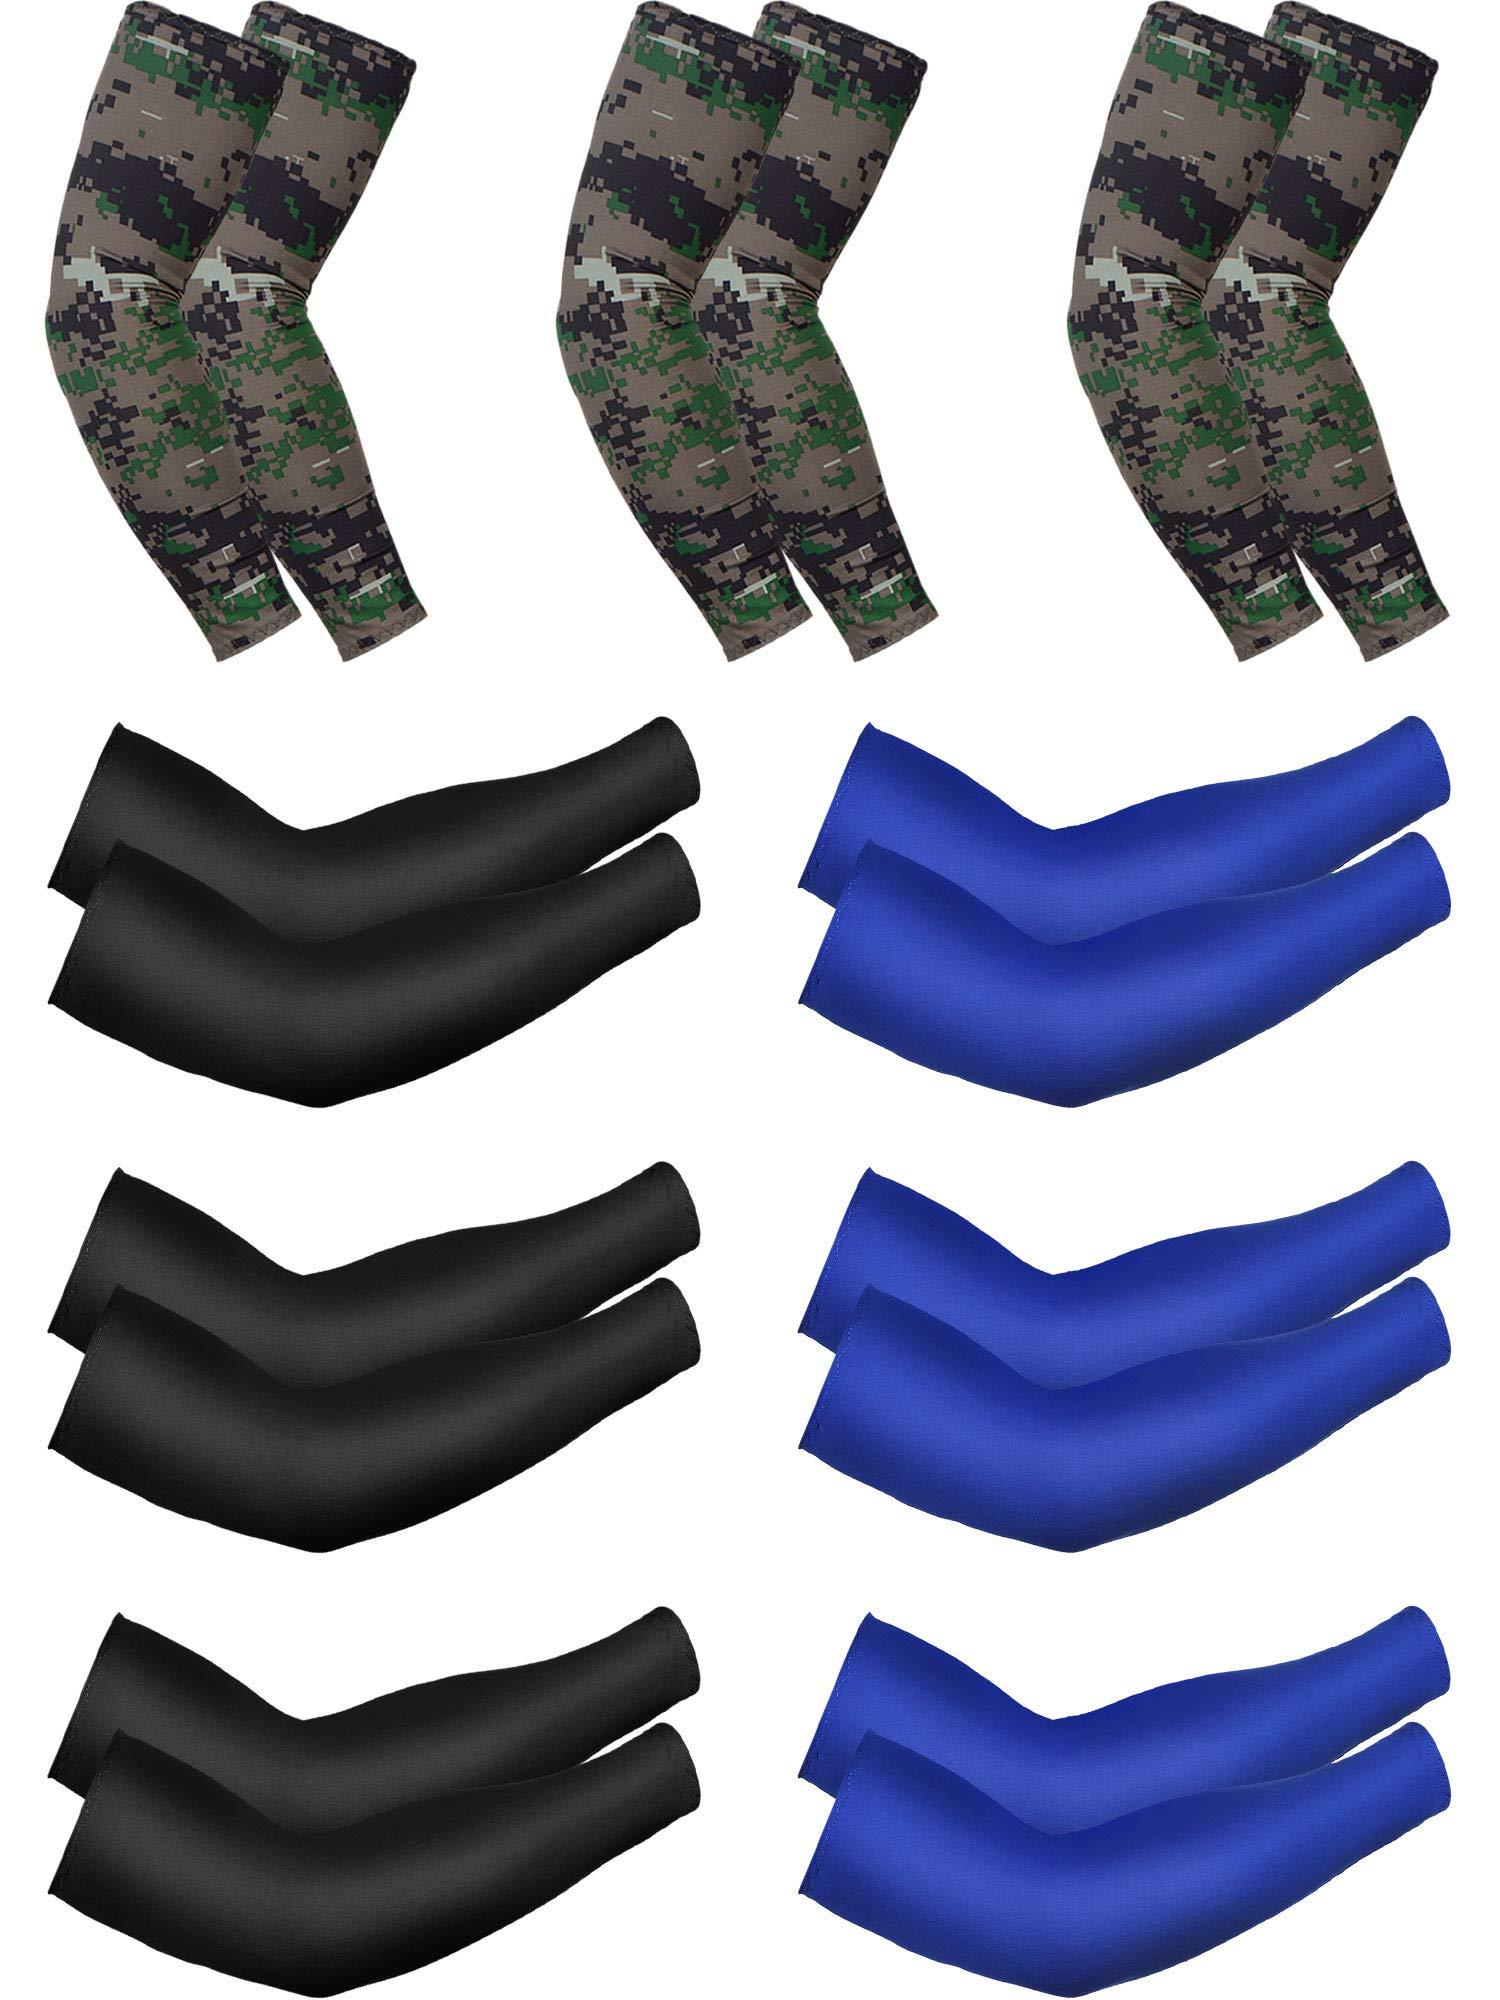 Unisex UV Protection Sleeves Long Arm Sleeves Cooling Sleeves Ice Silk Arm Cover Sleeves (Black, Navy Blue, Camouflage, 9 Pairs)